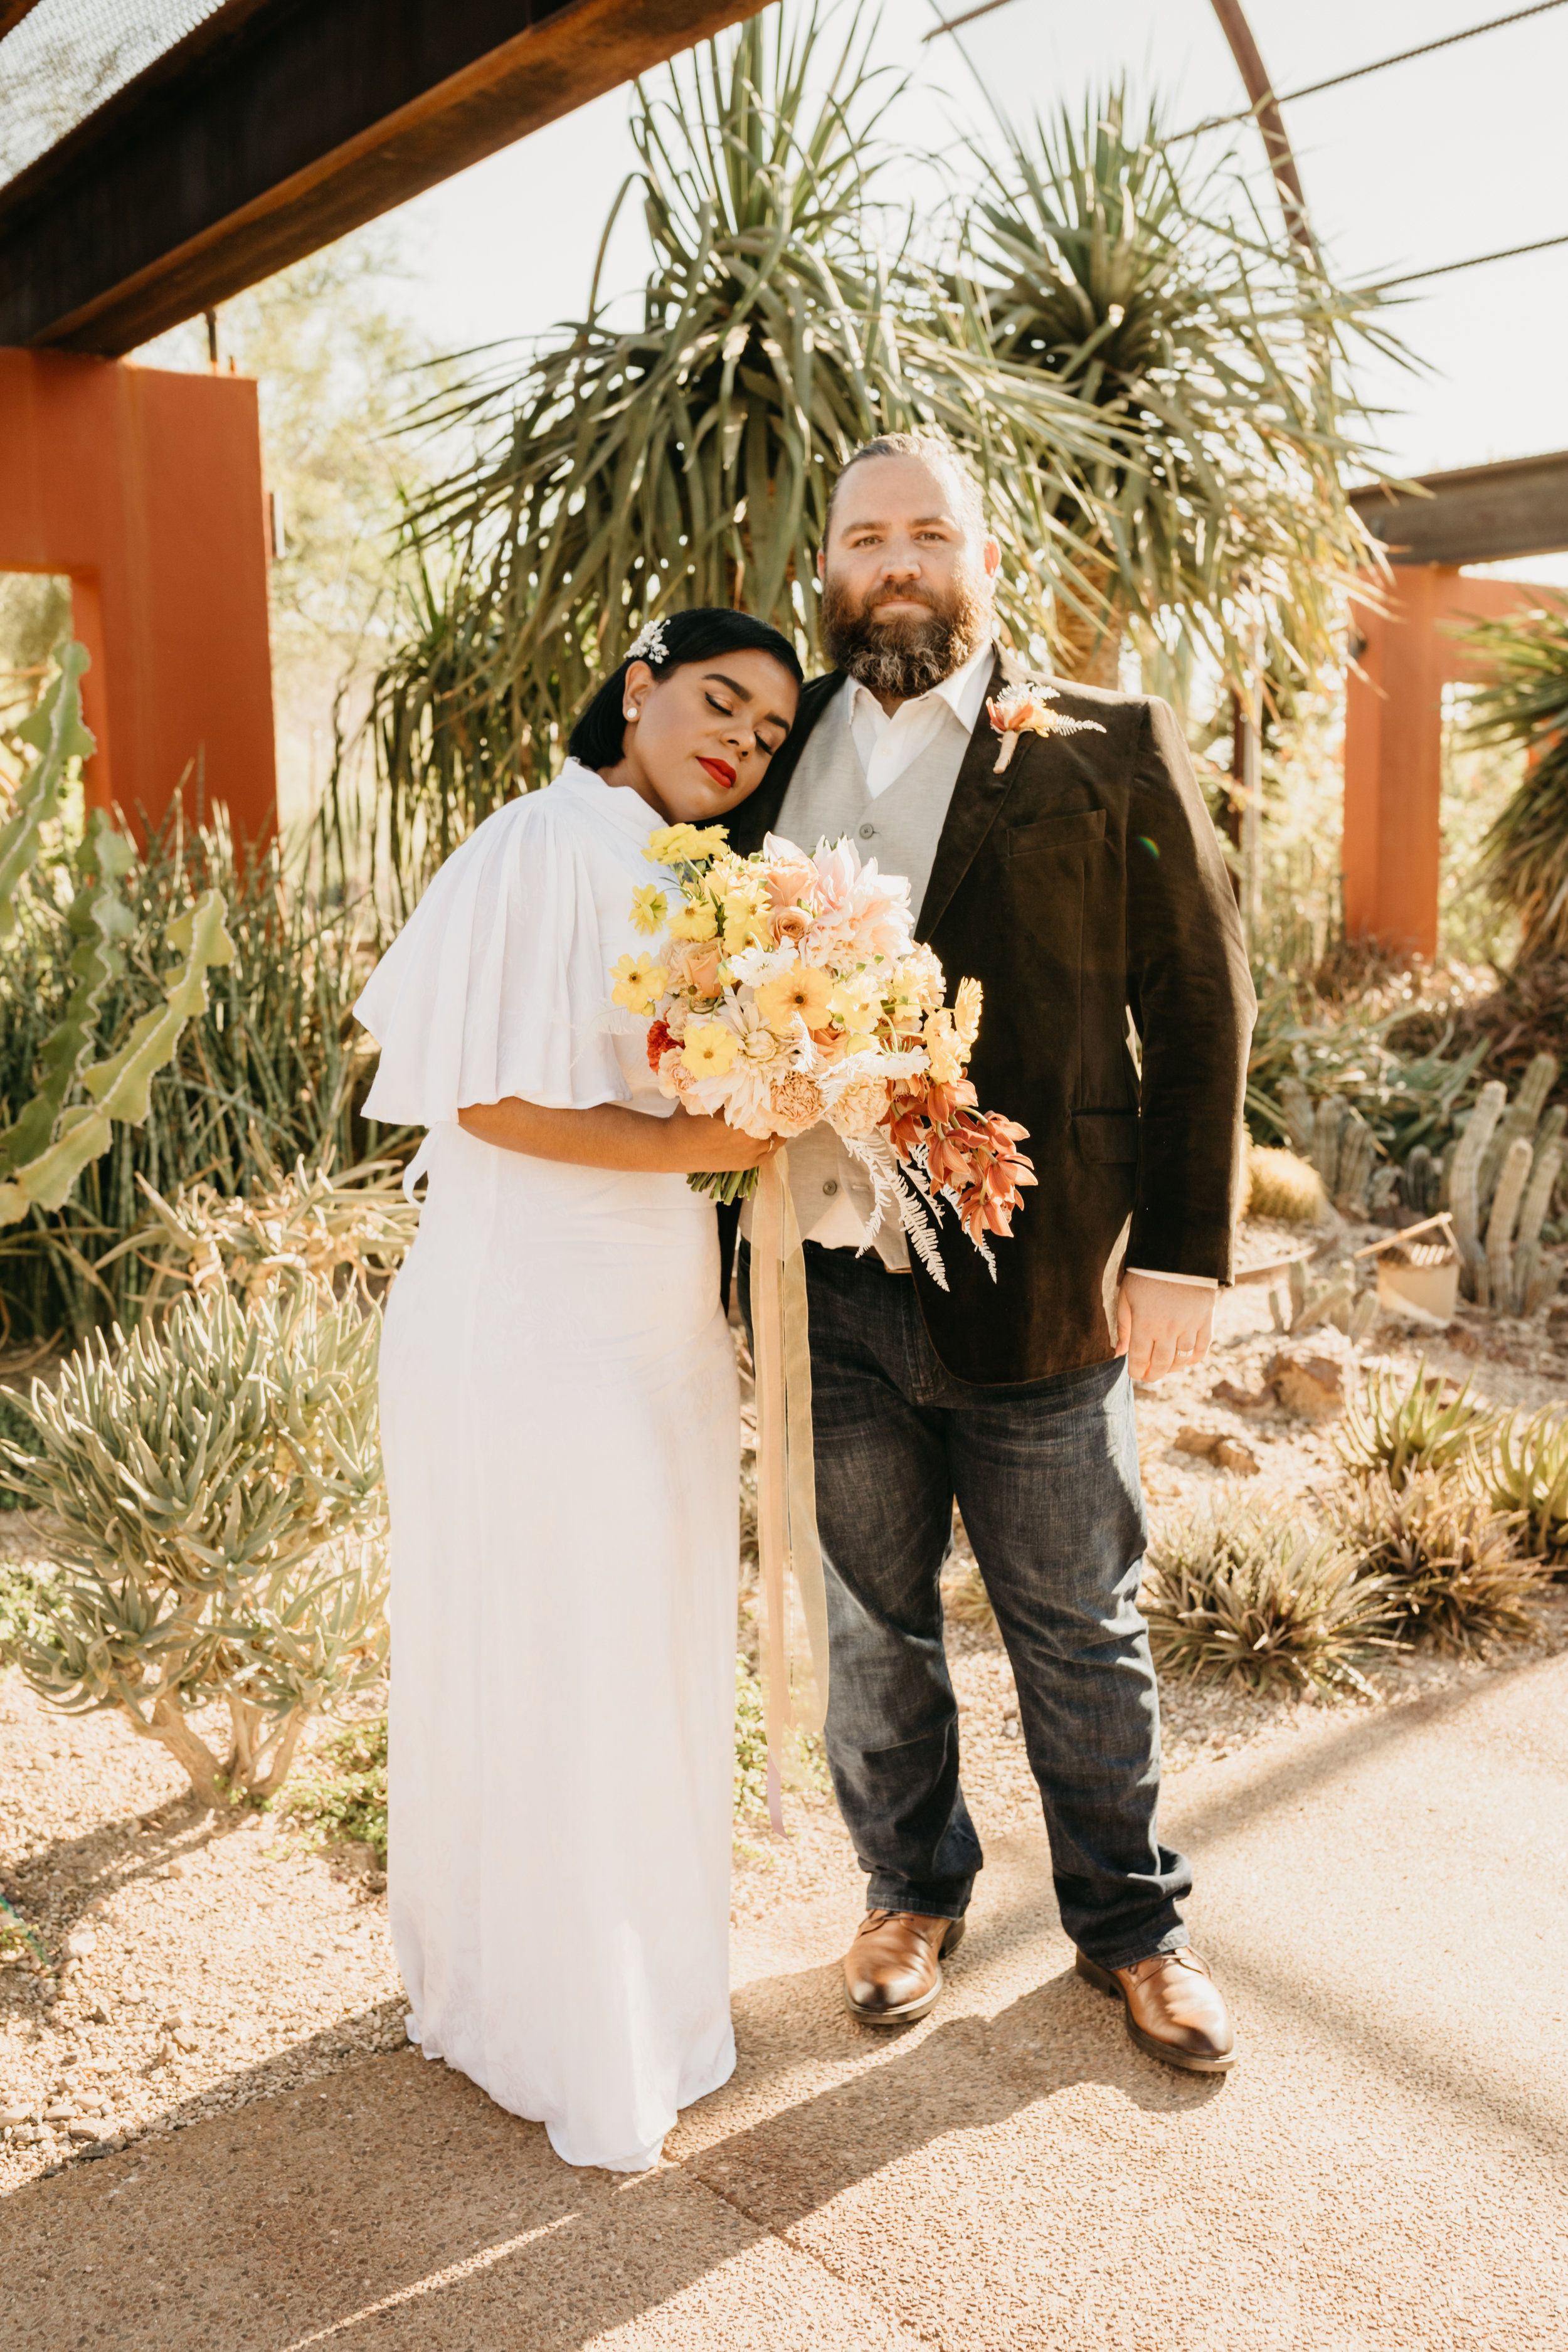 Denisse & Chase on their wedding day as captured by Jaryd Neibauer